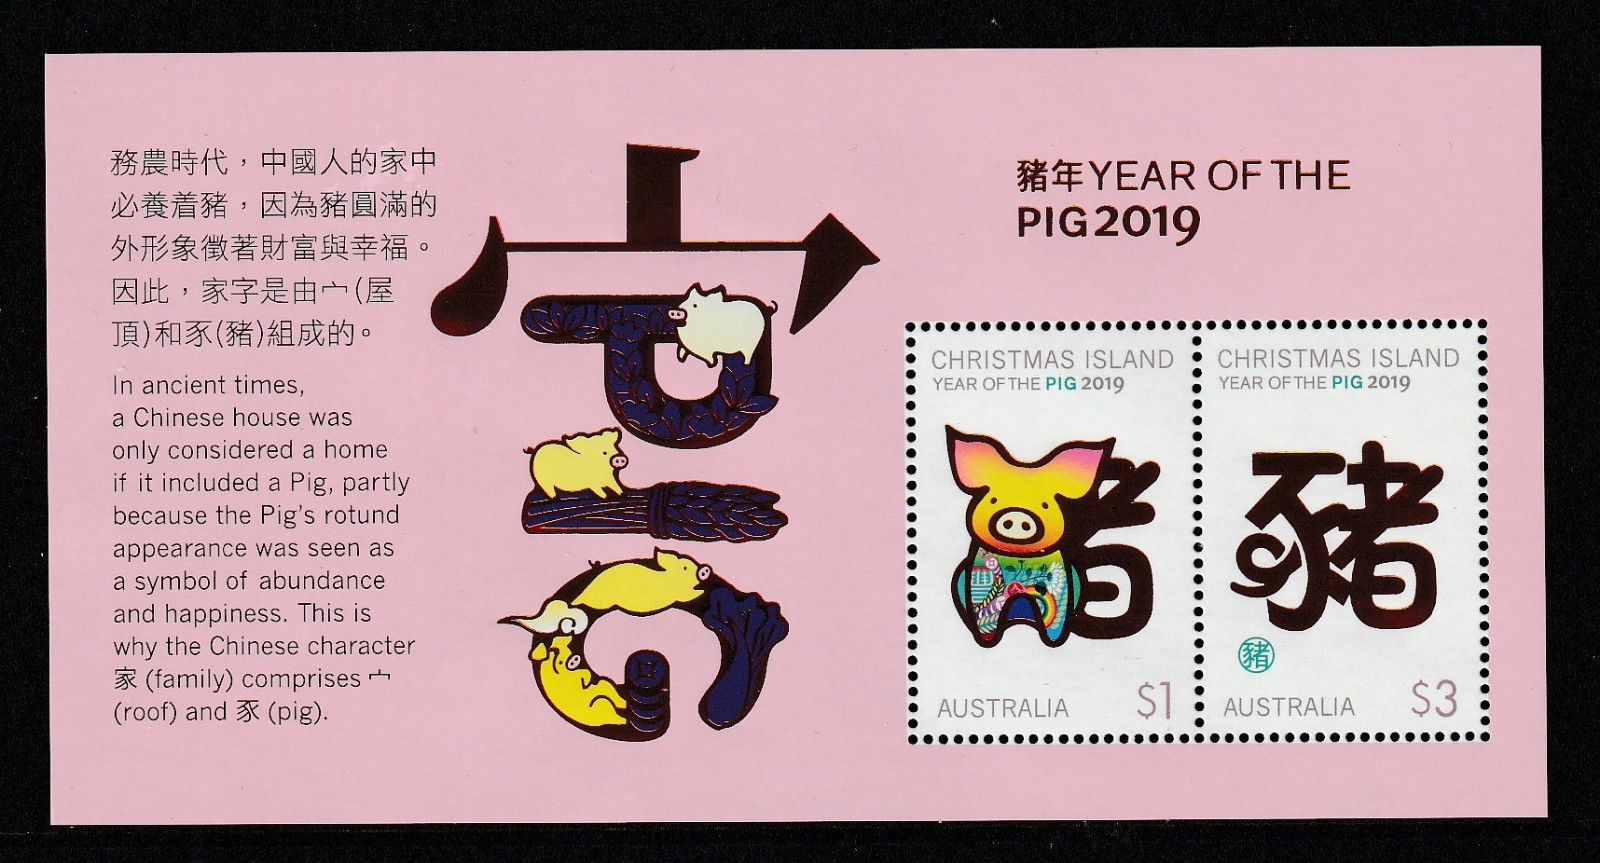 Christmas Island - Year of the Pig (January 8, 2019) souvenir sheet